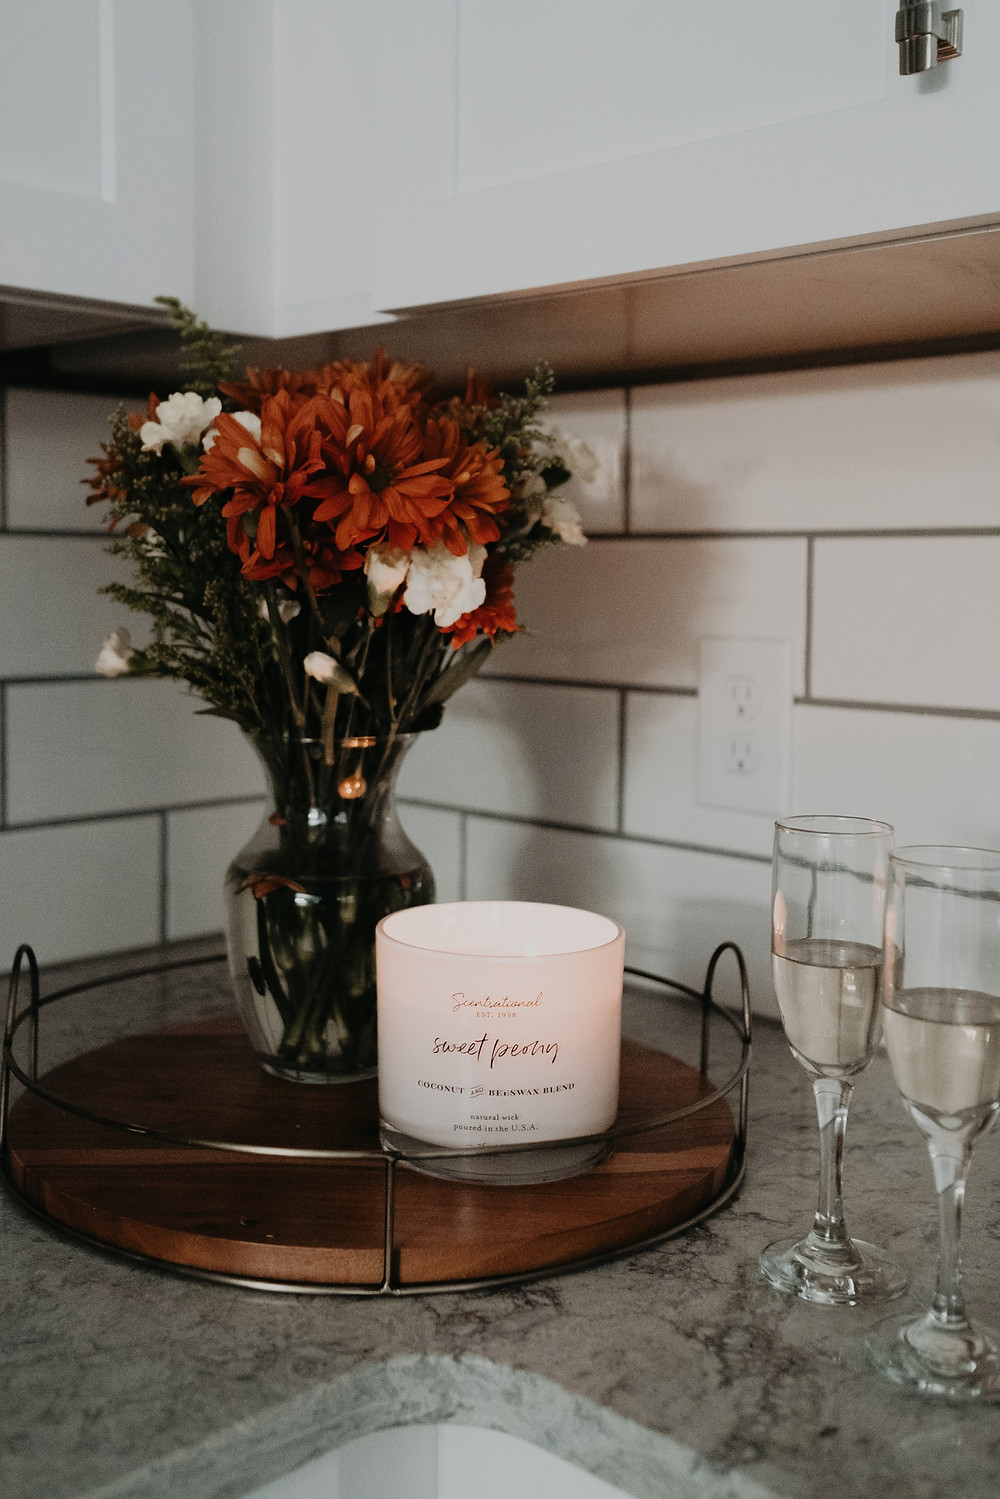 Champagne flutes and flowers at home engagement session. Photographed by Nicole Leanne Photography.